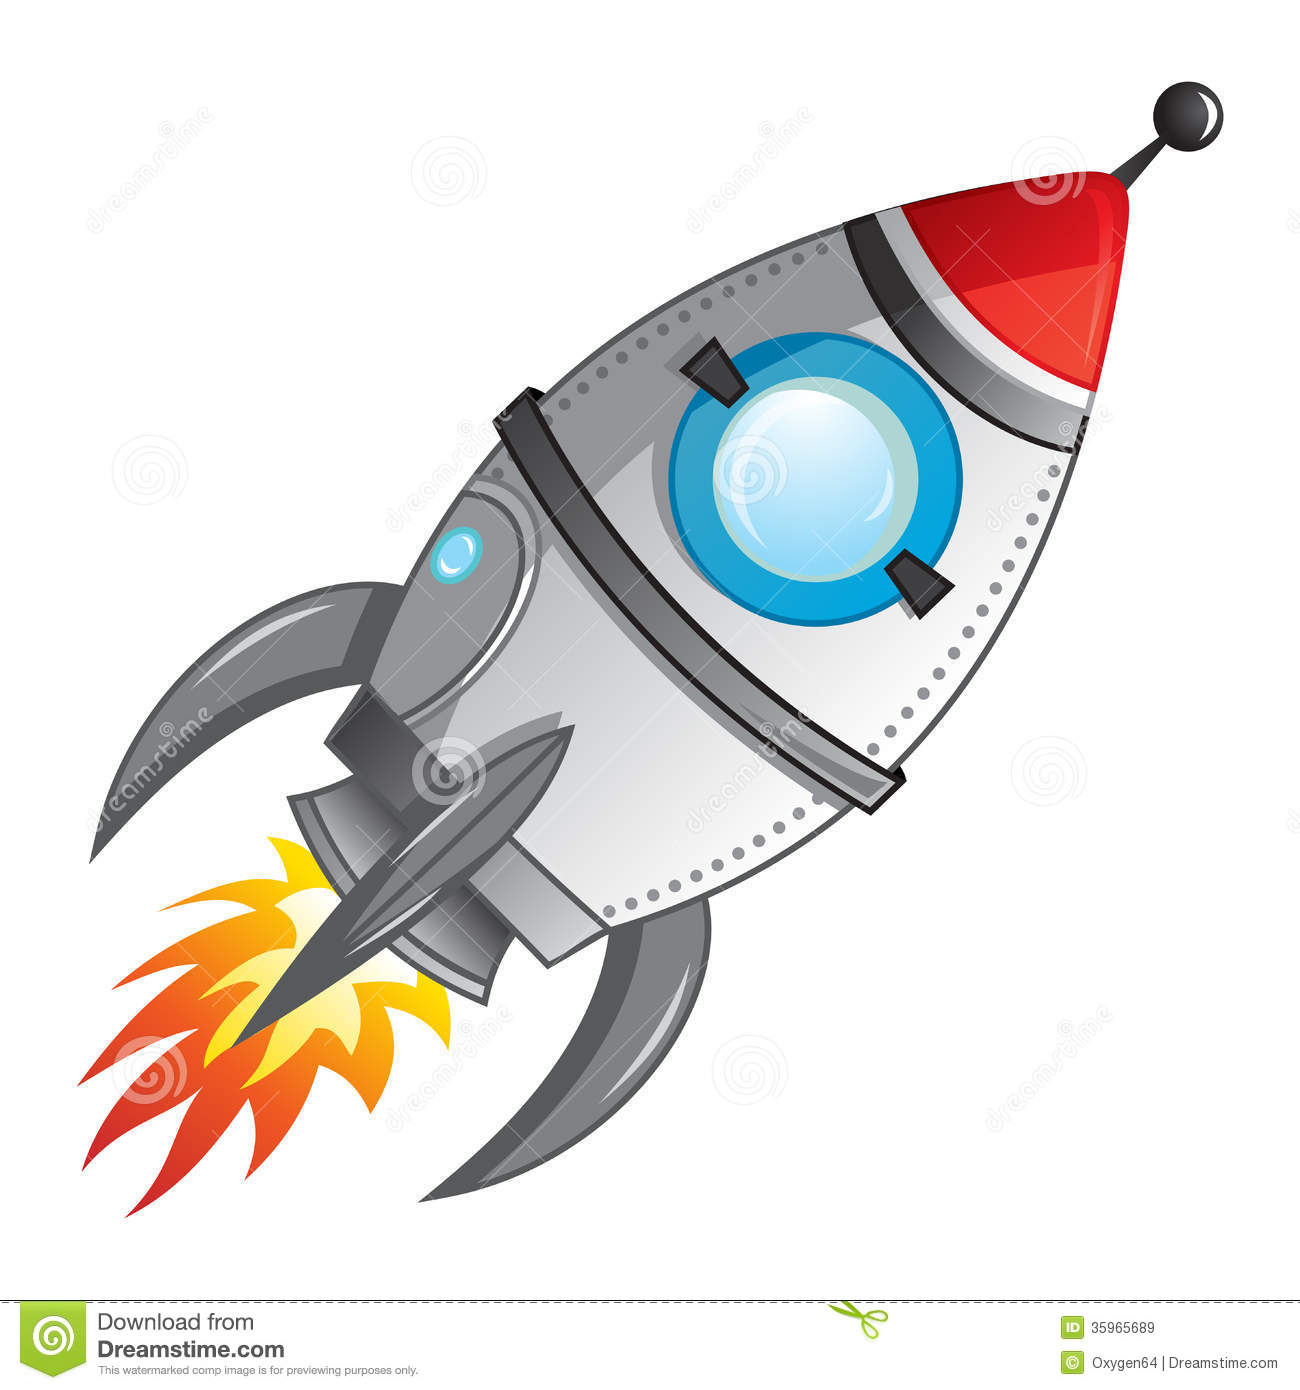 https://thumbs.dreamstime.com/z/rocket-launch-cartoon-flame-coming-engine-35965689.jpg